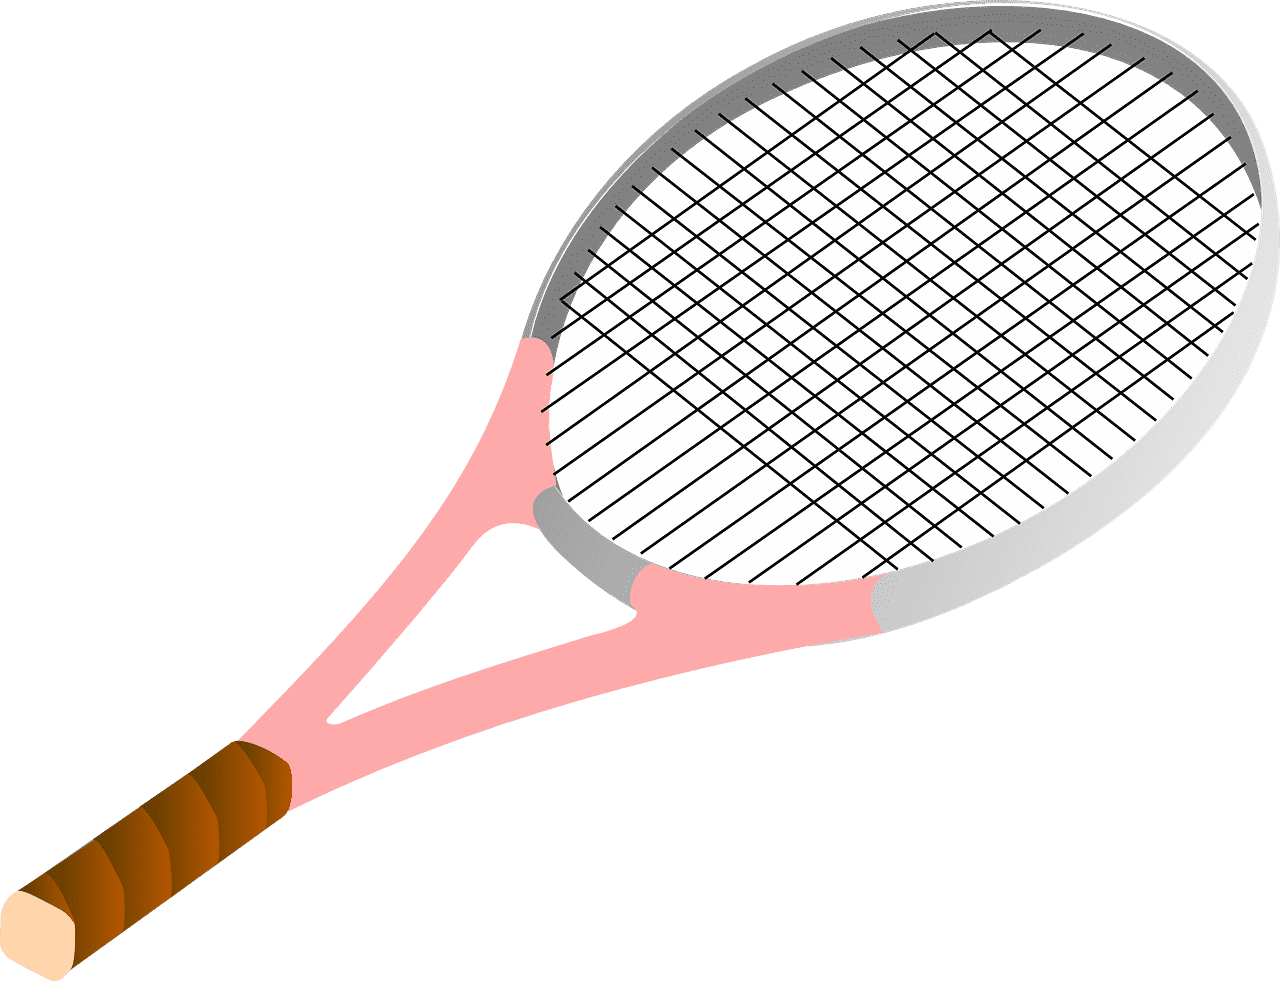 Why is tennis scoring so different than other sports